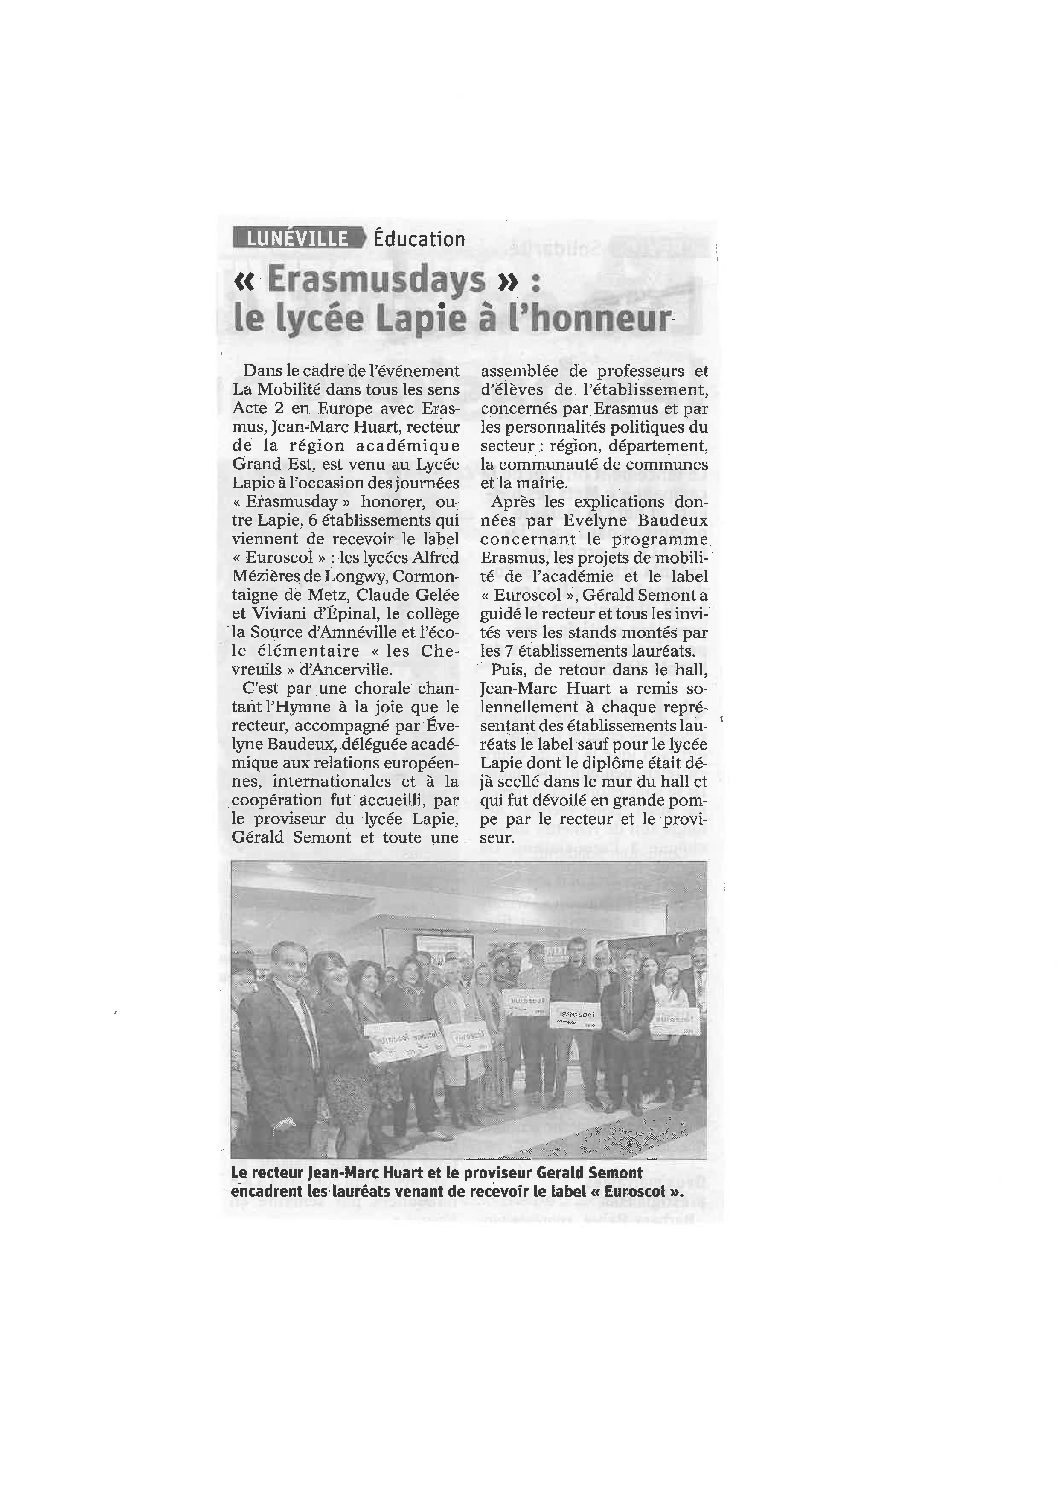 Article de presse label Euroscol